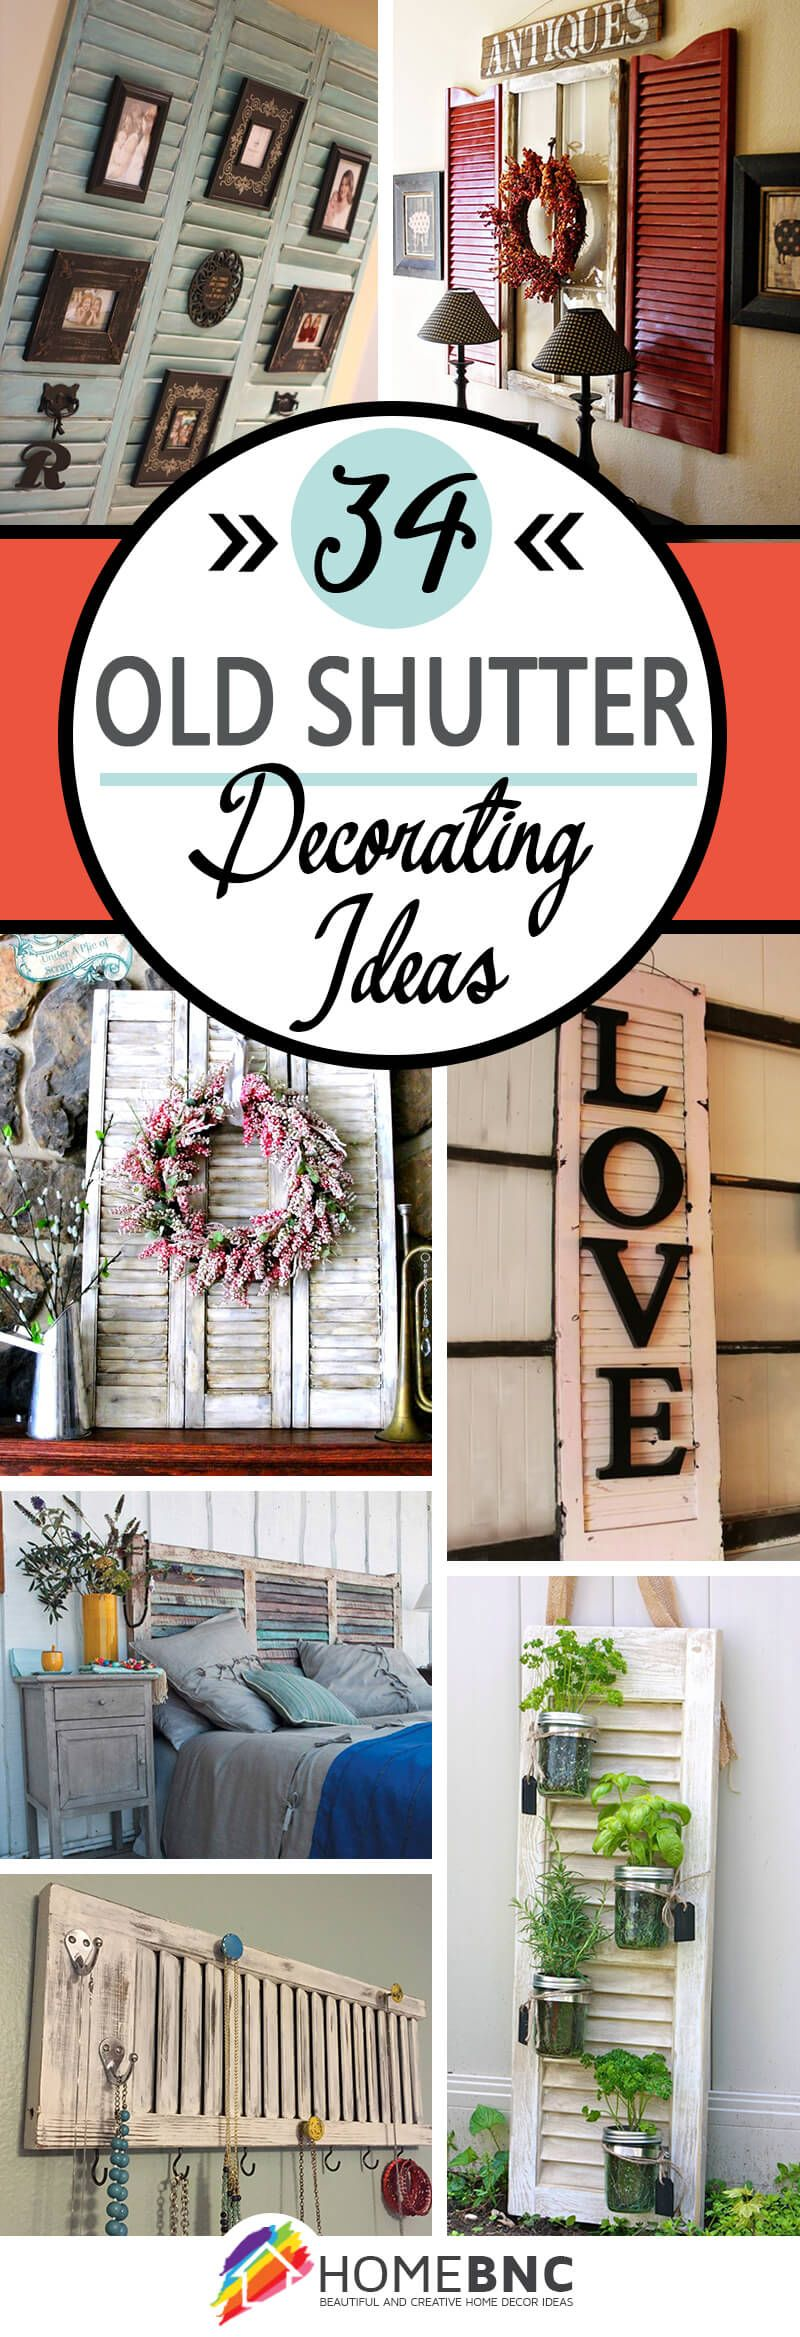 34 Ways Decorating with Old Shutters Can Make Your Home Charming ...